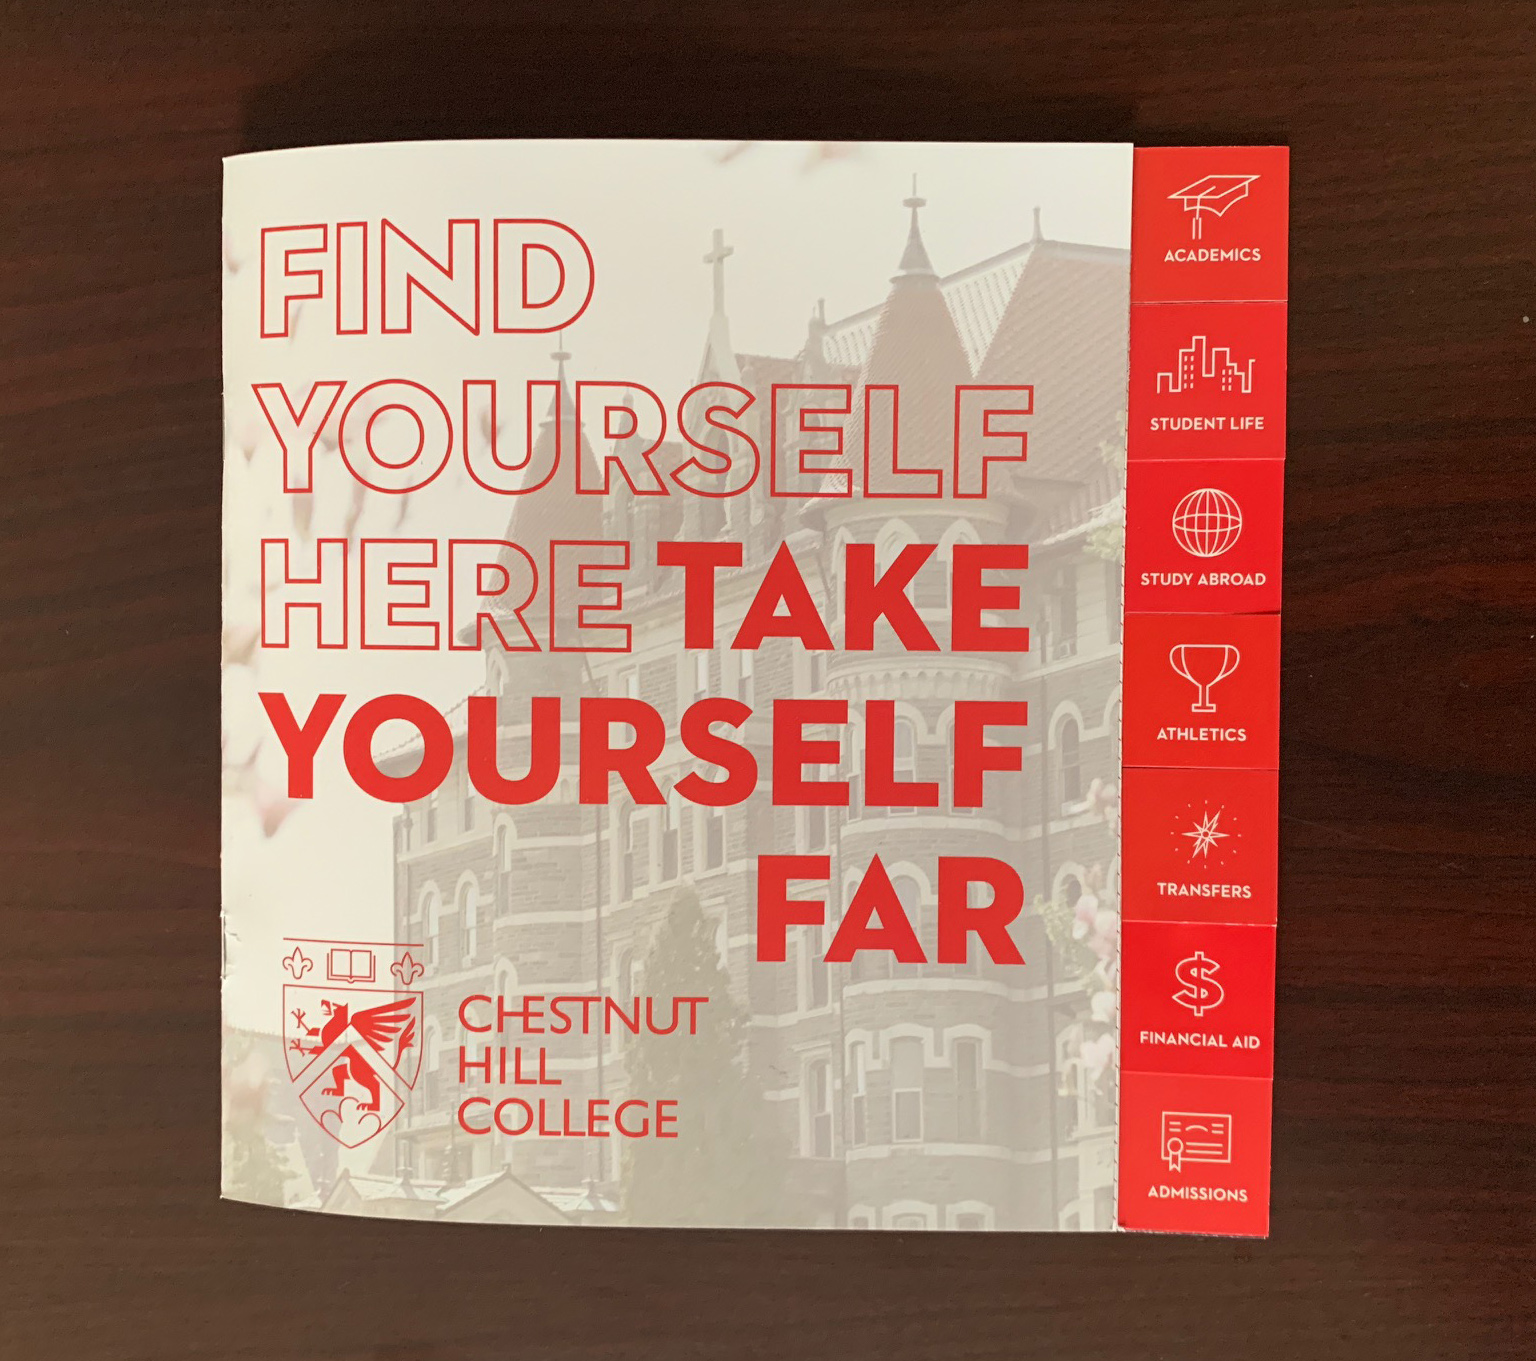 Chestnut Hill College Travel Viewbook